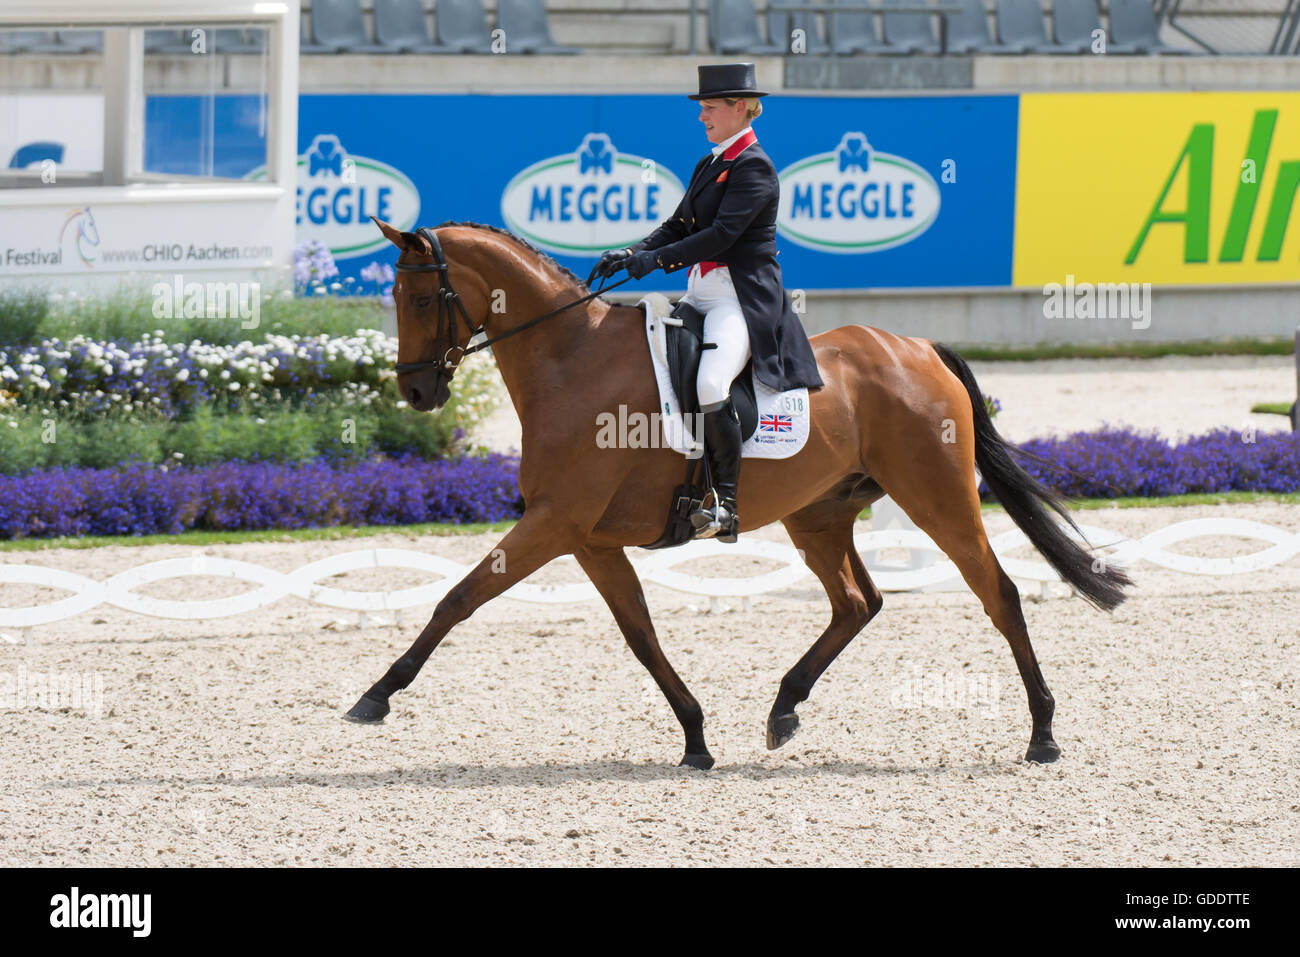 Aachen, North Rhine-Westphalia, Germany, 15th July 2016, Zara Tindall and her horse High Kingdom take part in the Stock Photo